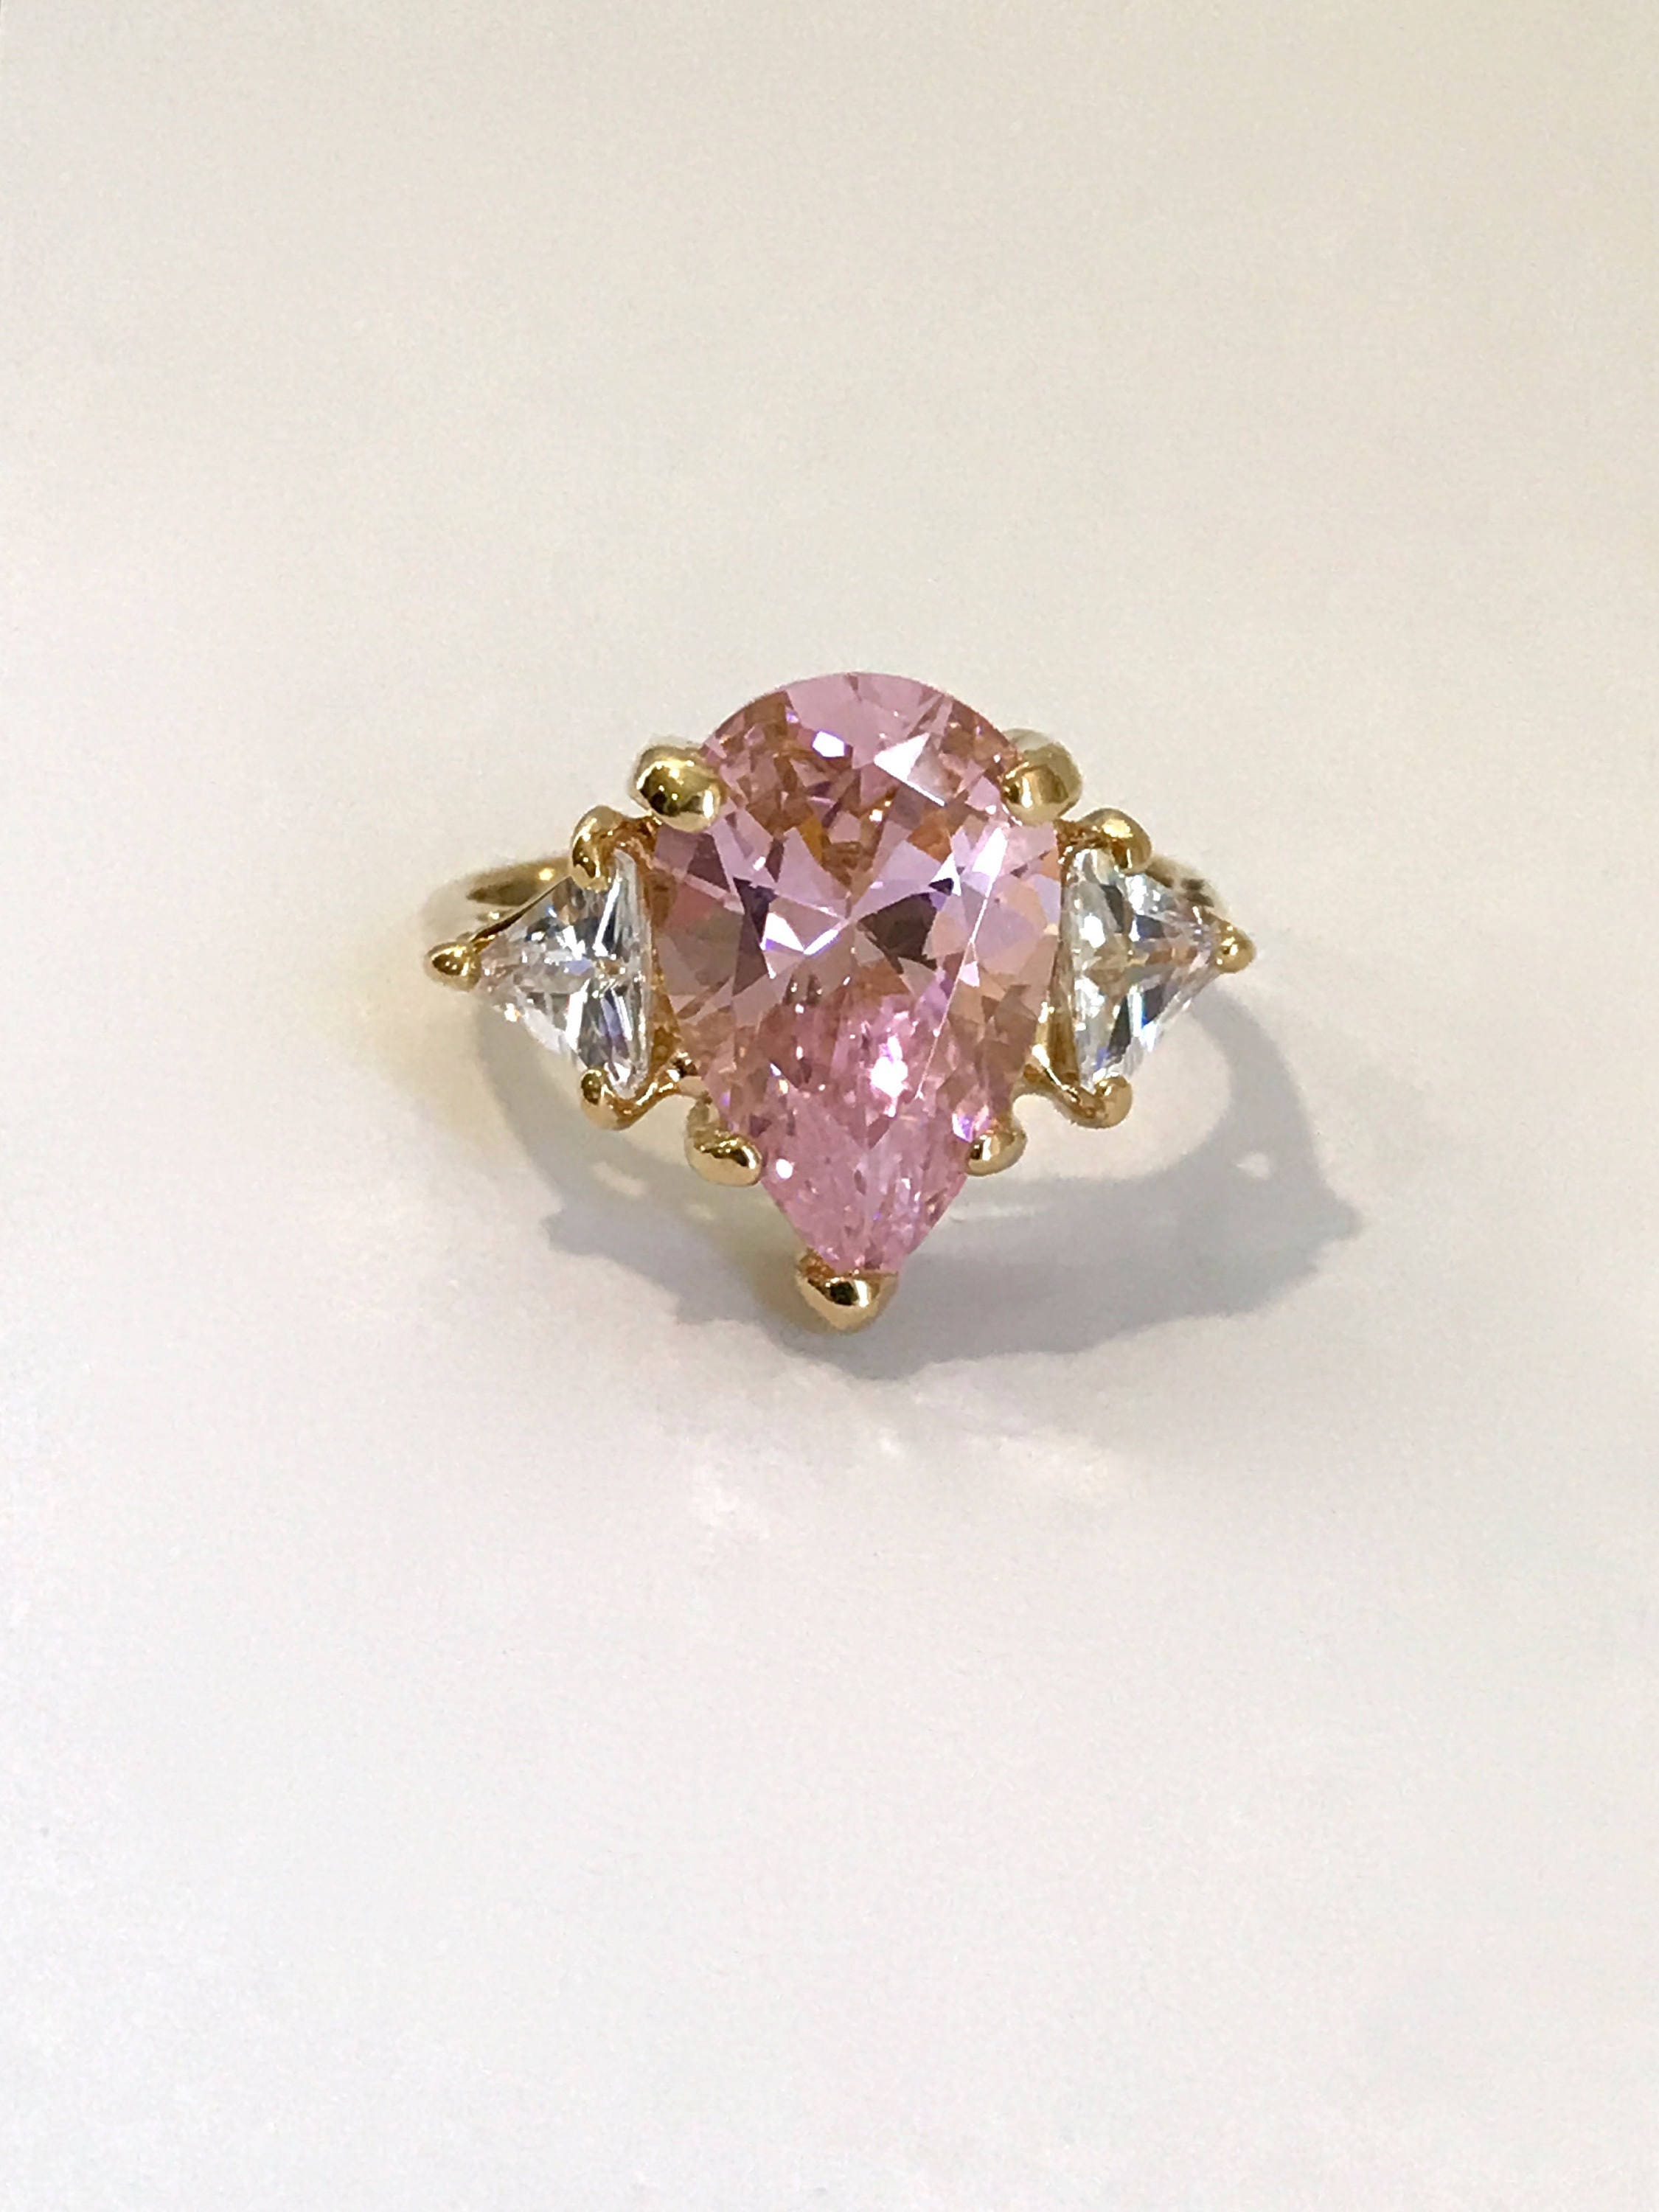 and stone pink avanti rings gold diamond tourmaline three ring womens engagement white image dress